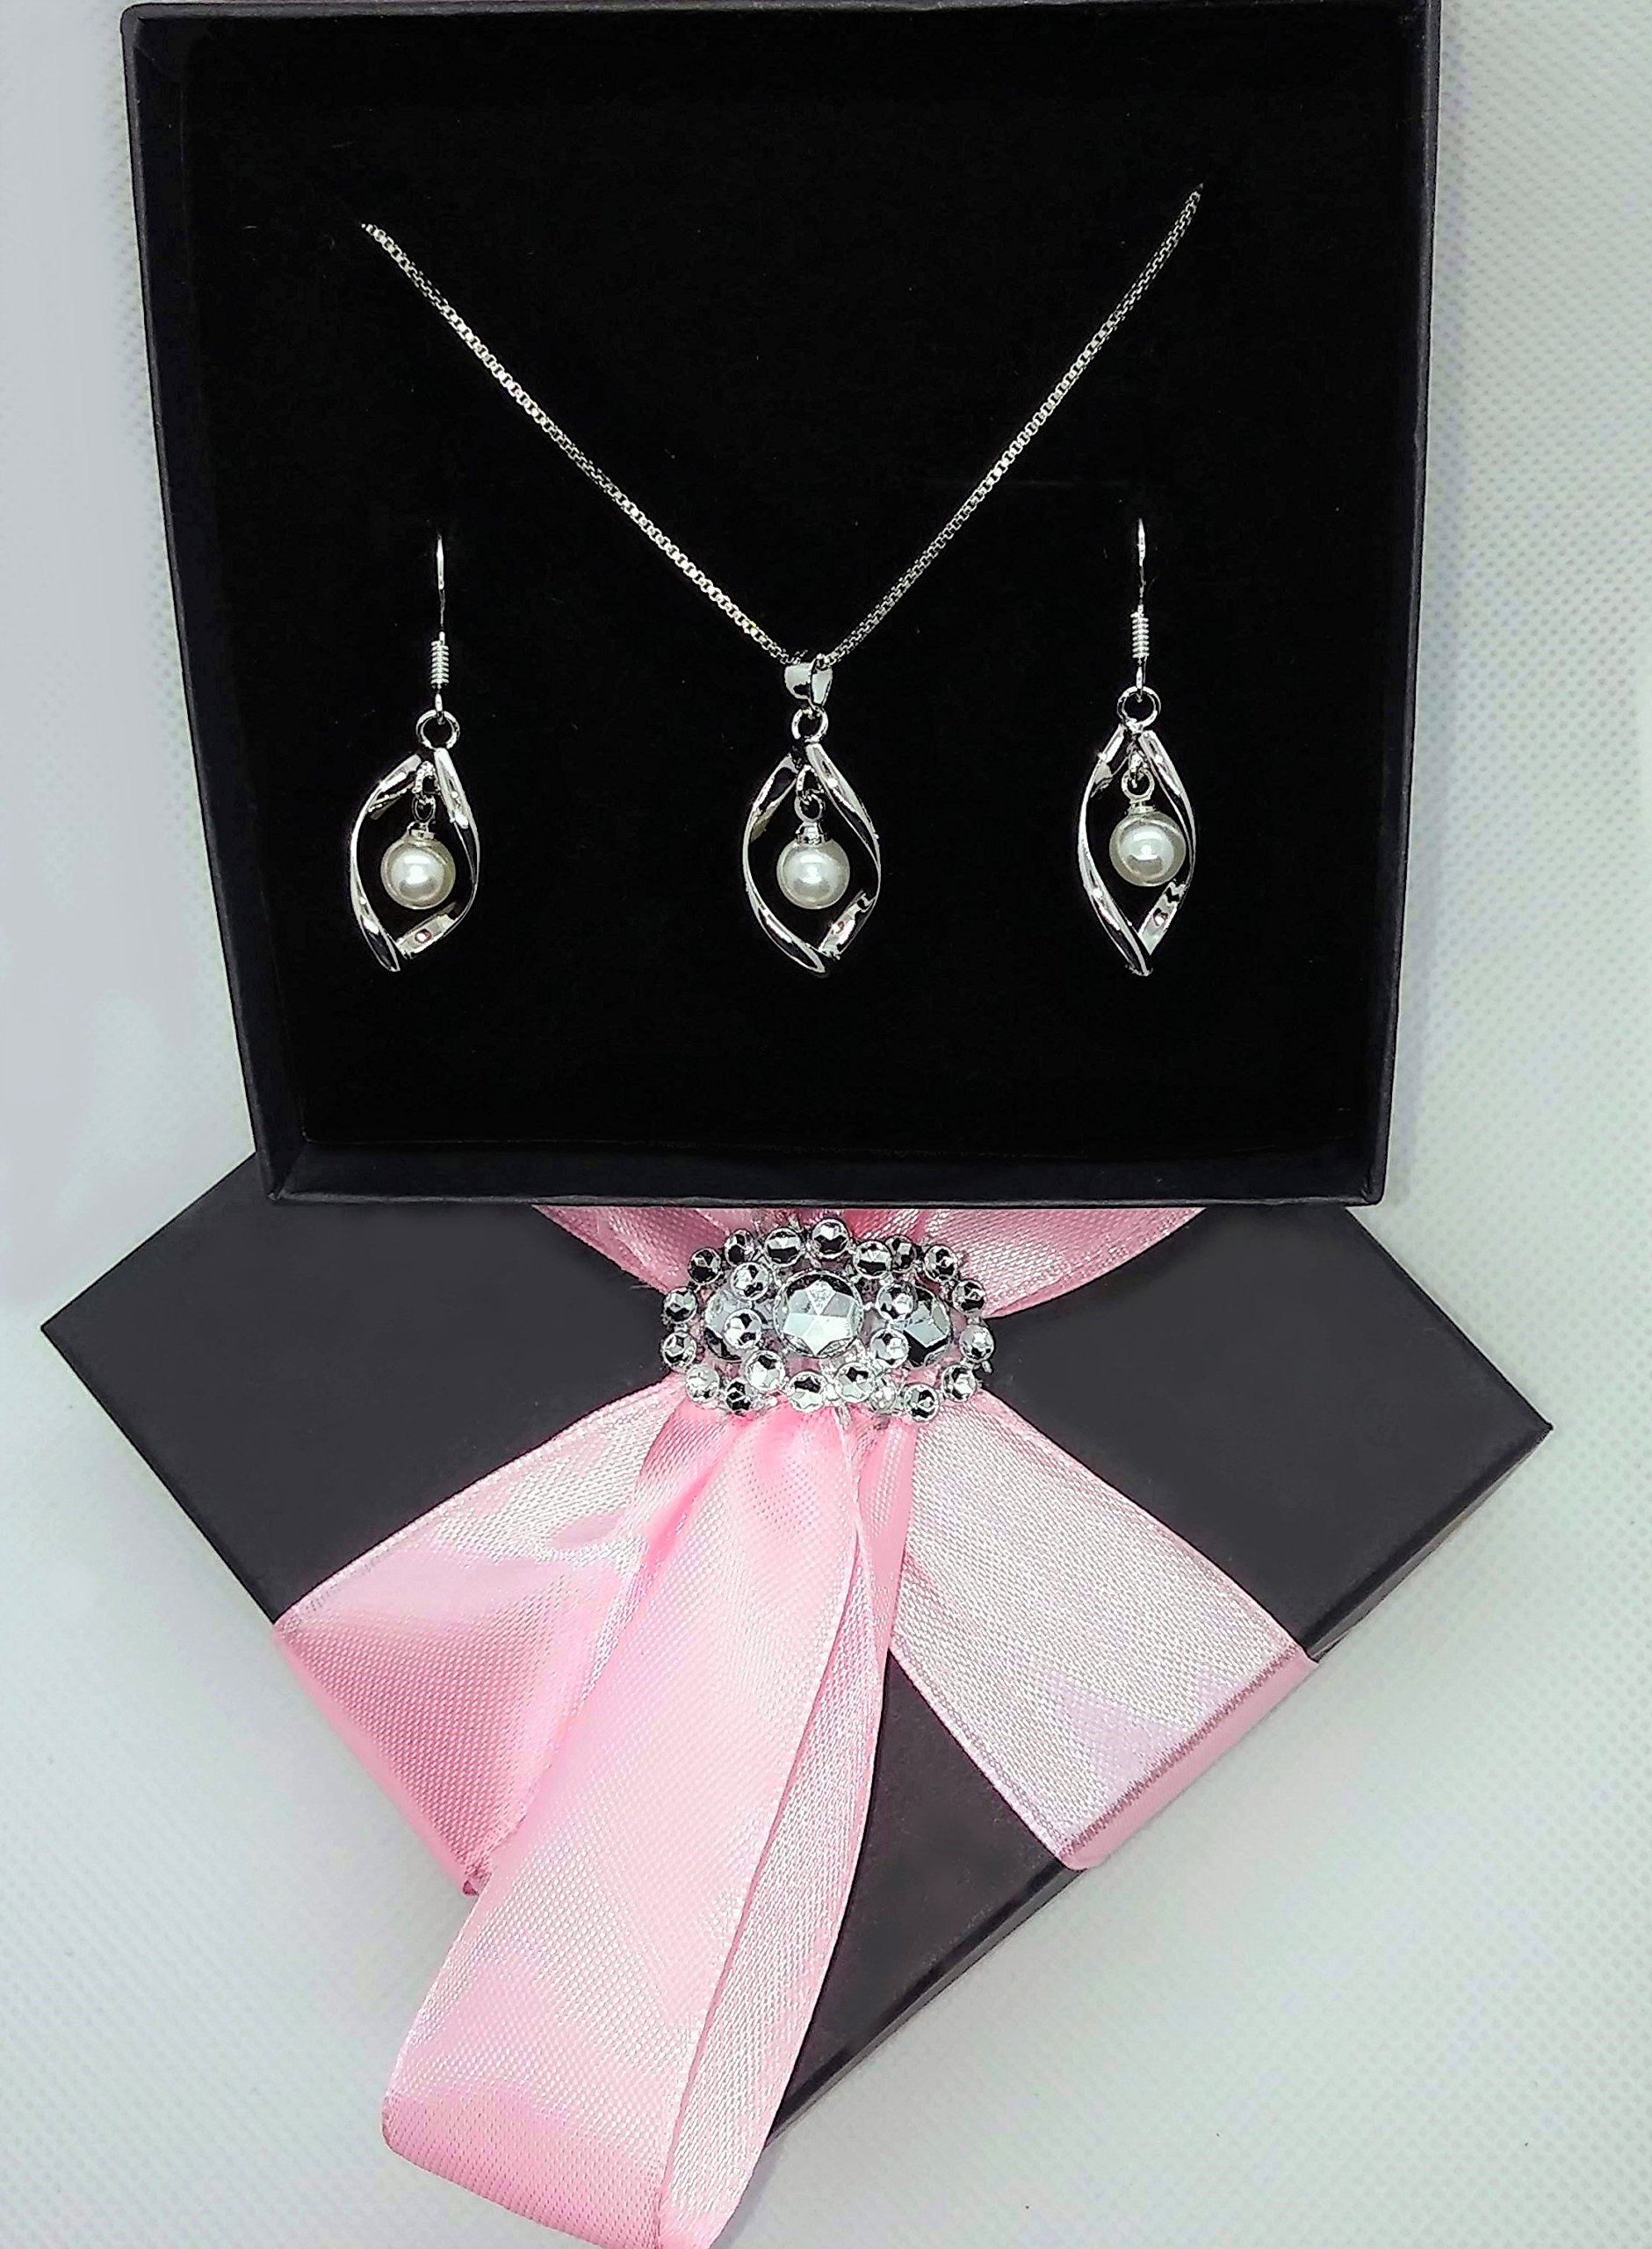 Maylena Belle Rhodium Plated Sterling Silver Cultured Freshwater Pearl Pendant Necklace and Earrings Set